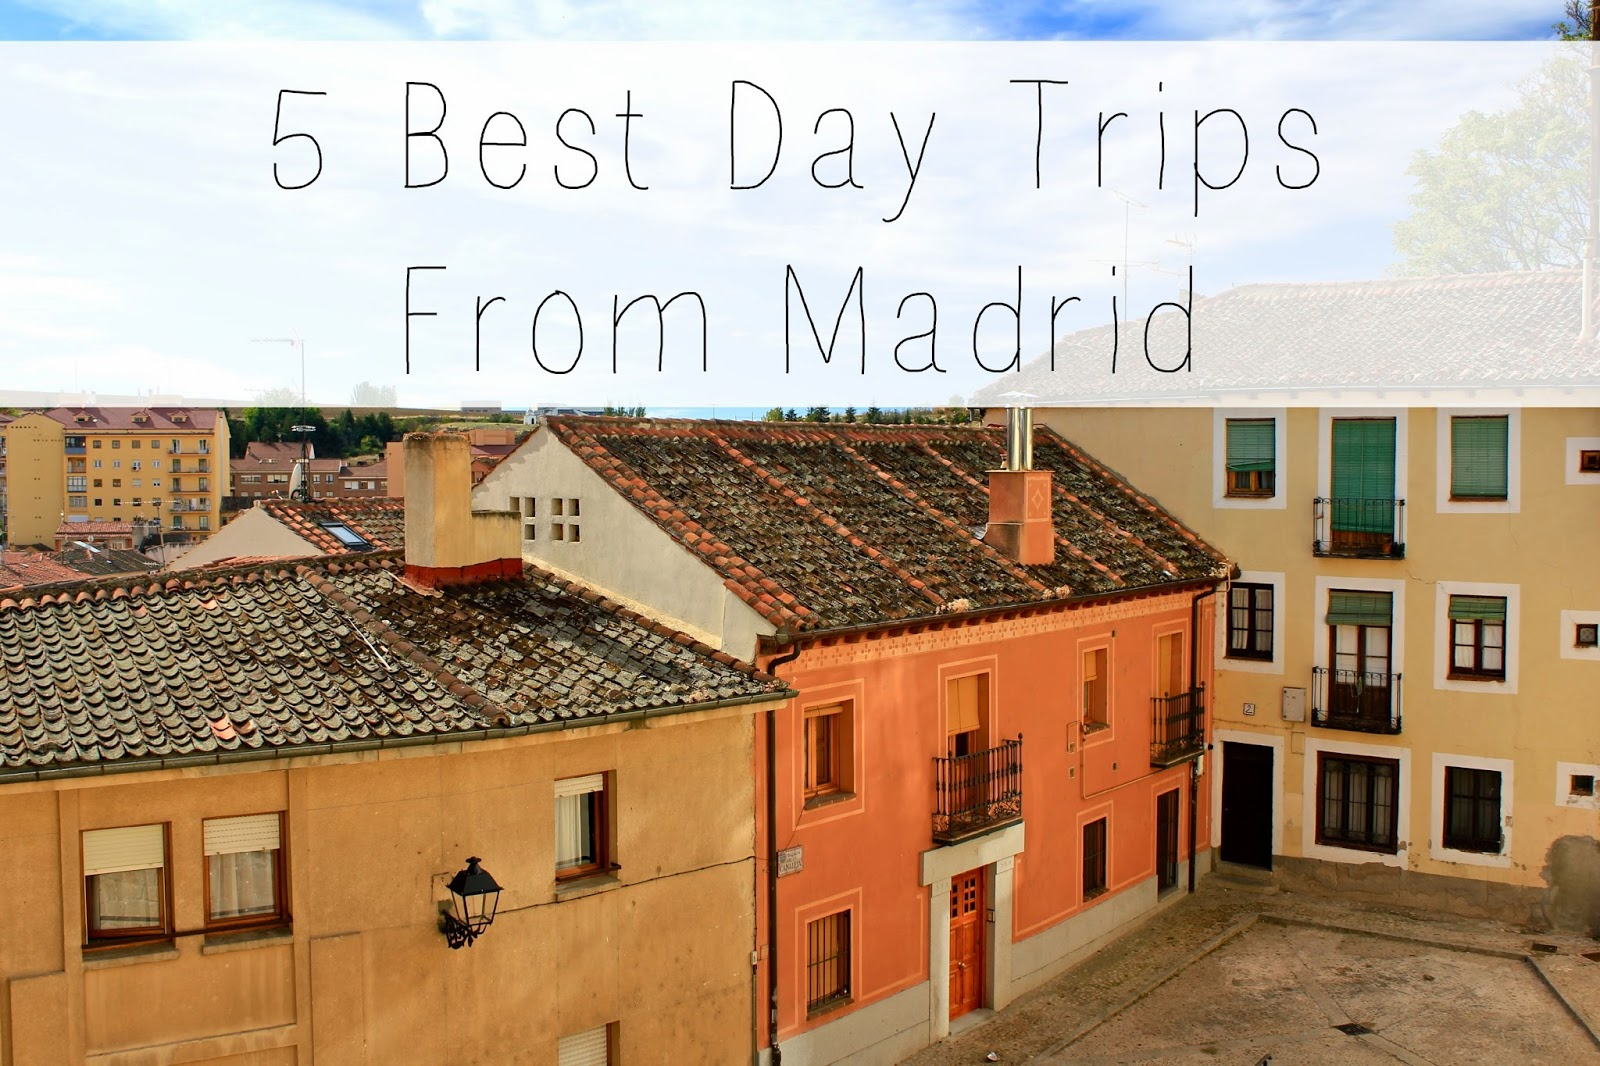 The 5 best day trips from Madrid - all less than 2 hours away from the city center! | Adelante